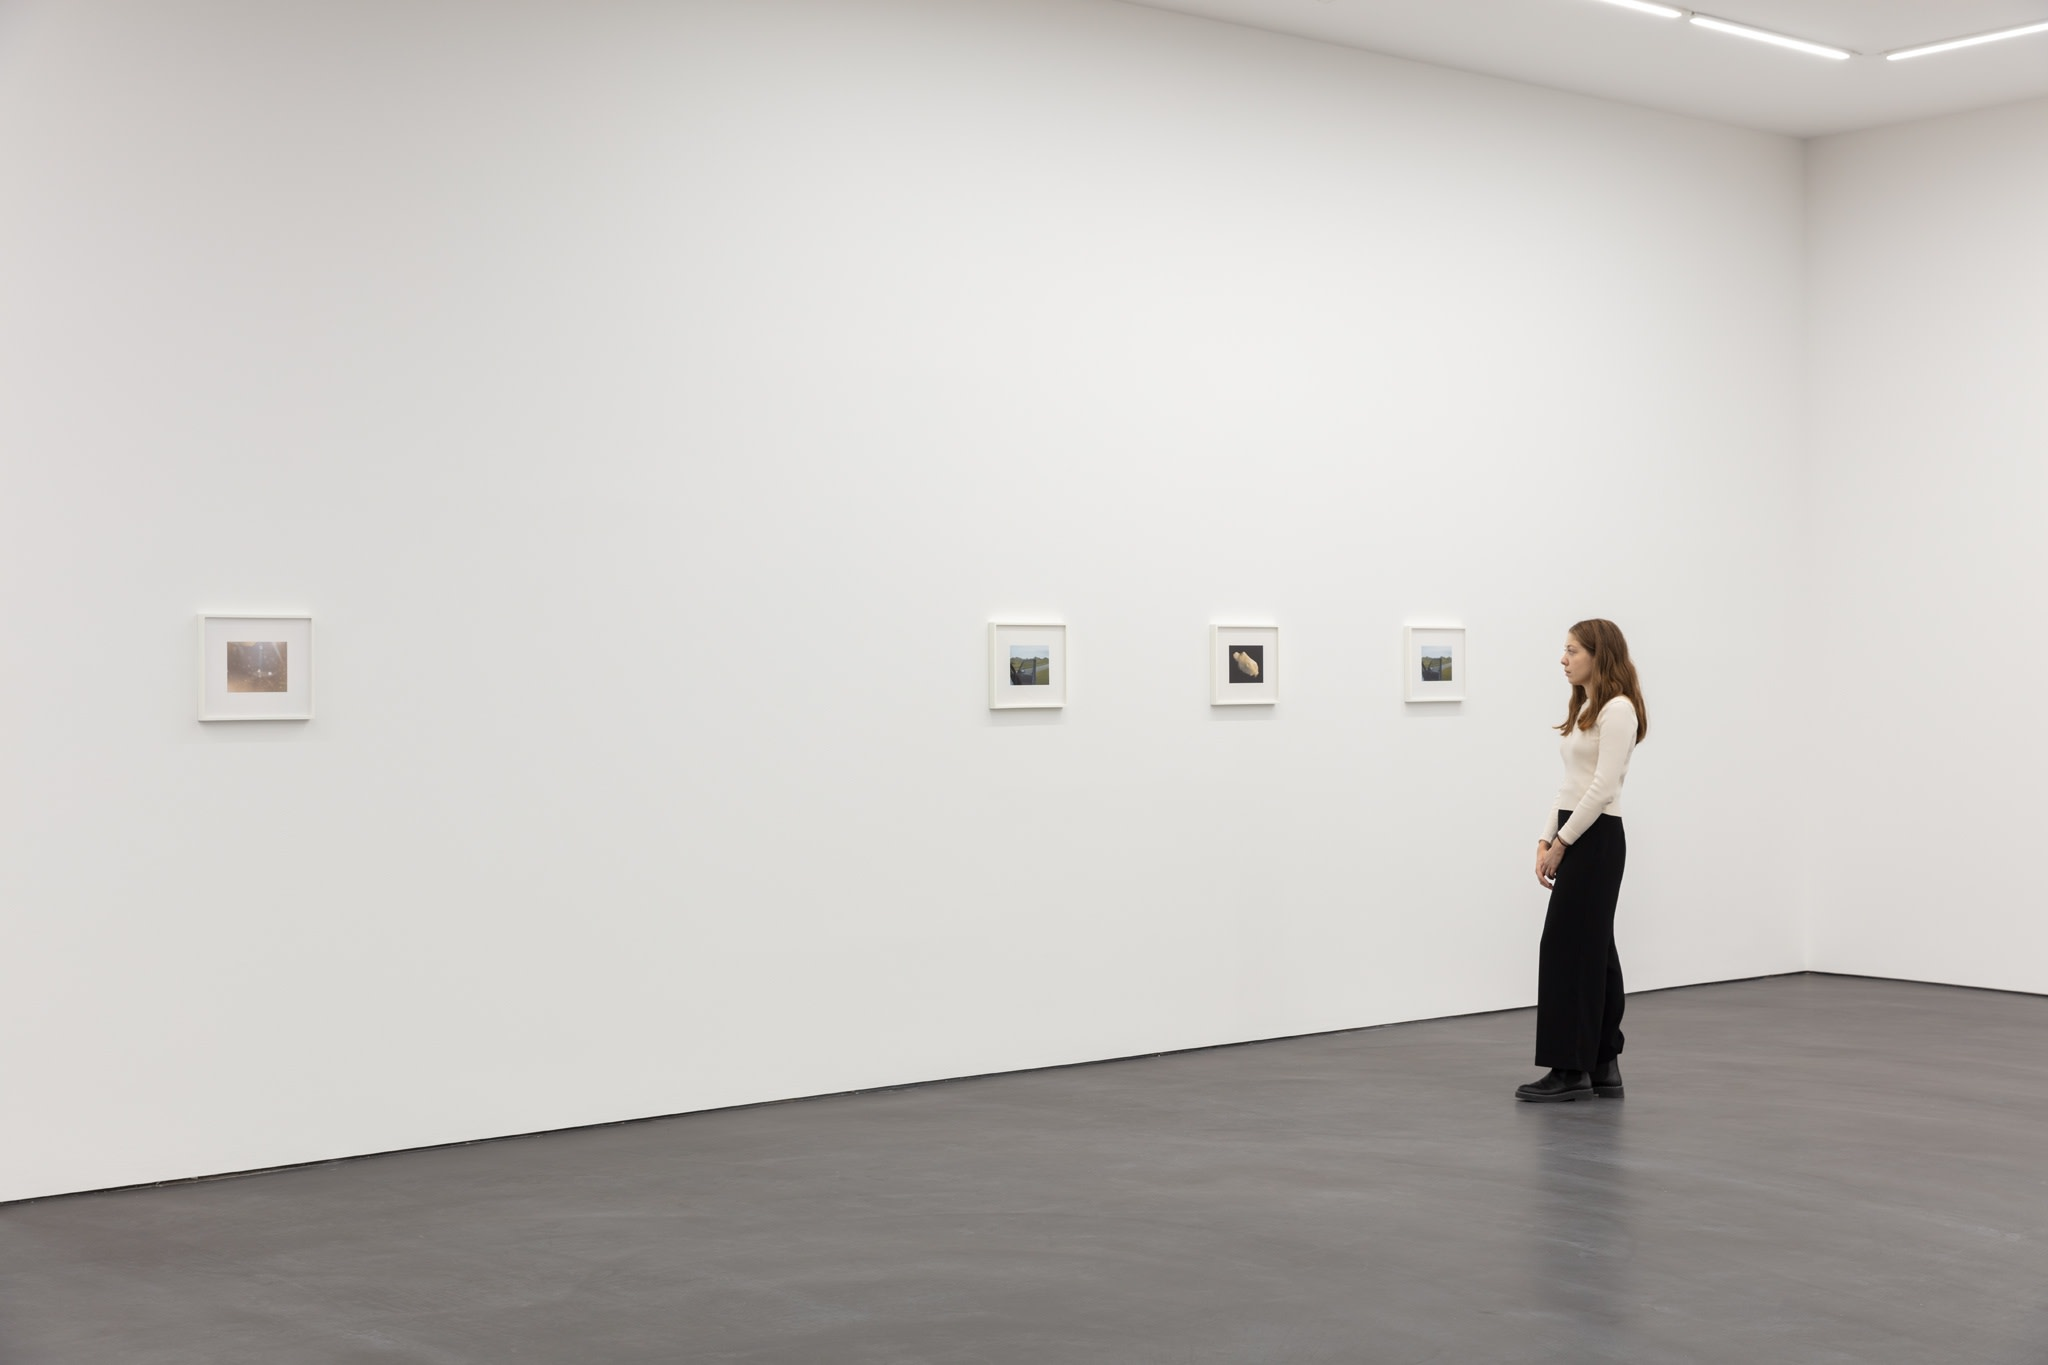 Exhibition view: Andrew Grassie, Still Frame, Esther Schipper, Berlin, 2020. Photo © Andrea Rossetti